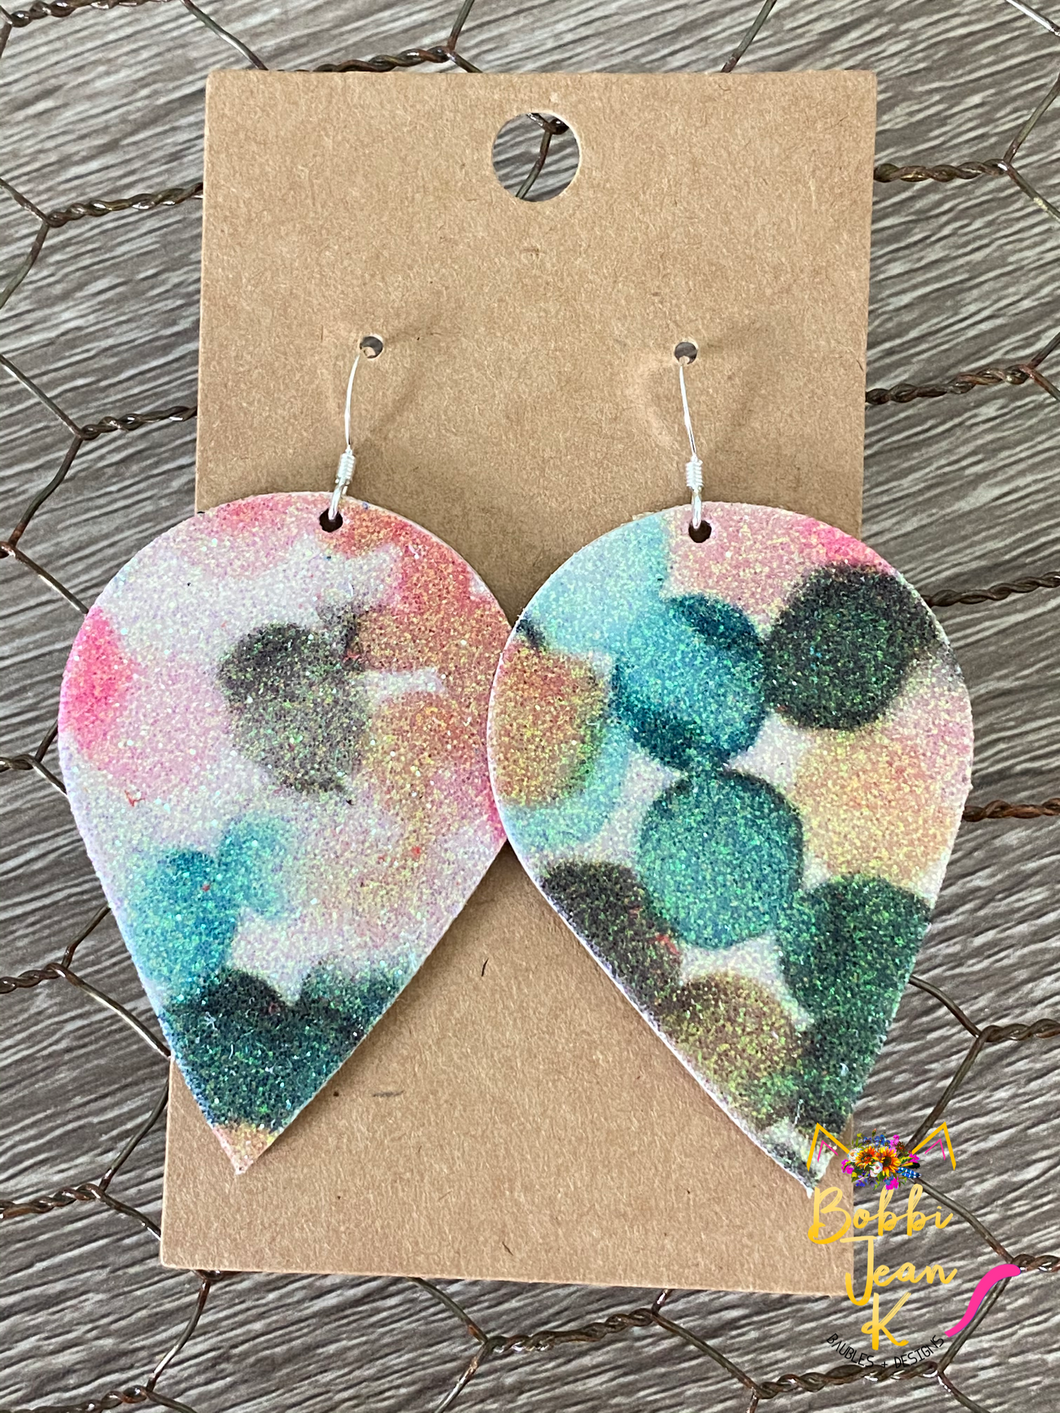 Infused Pink & Green Glitter Polka Dotted Inverted Teardrops